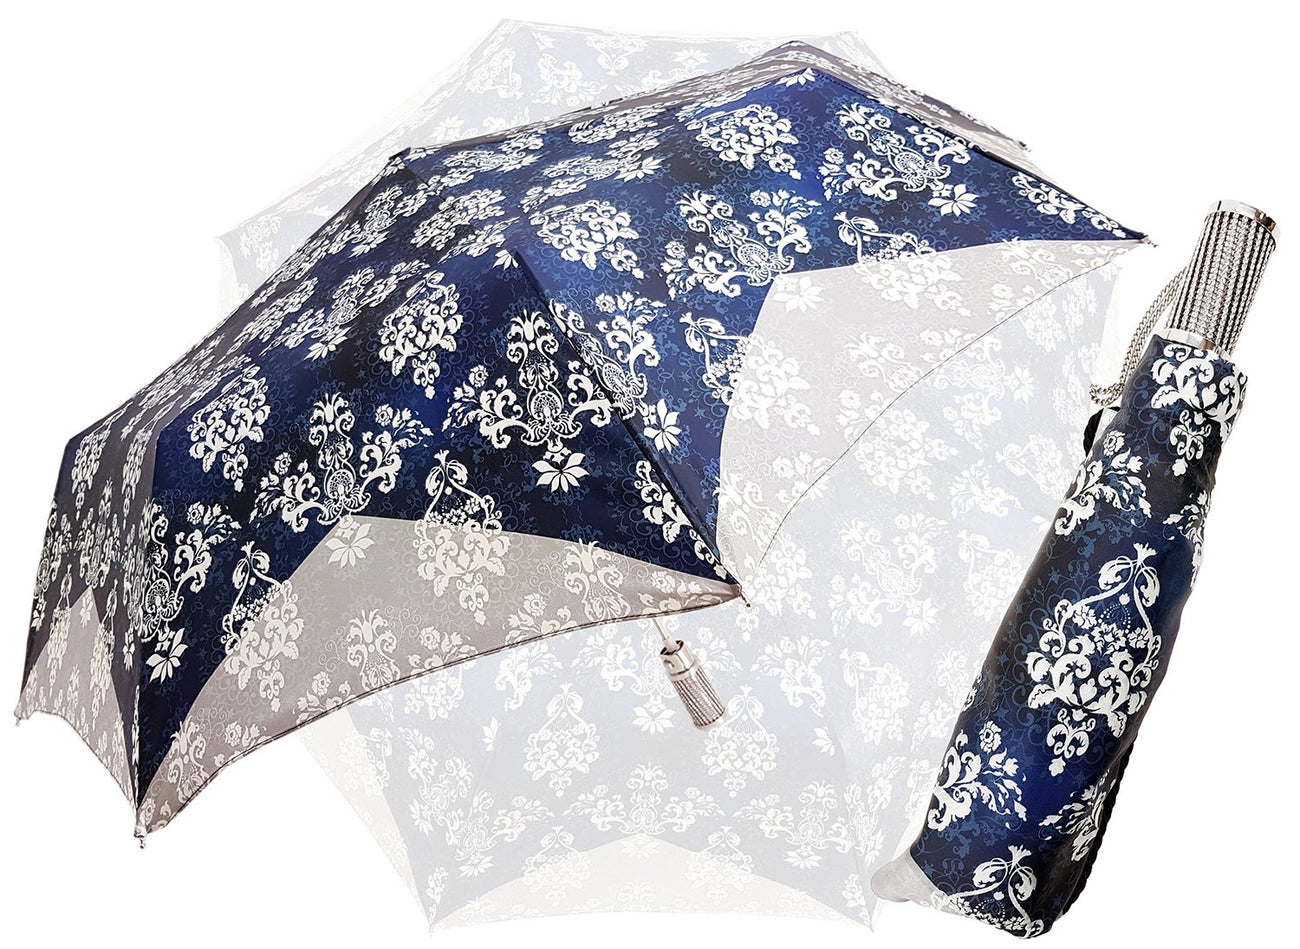 il marchesato compact umbrella